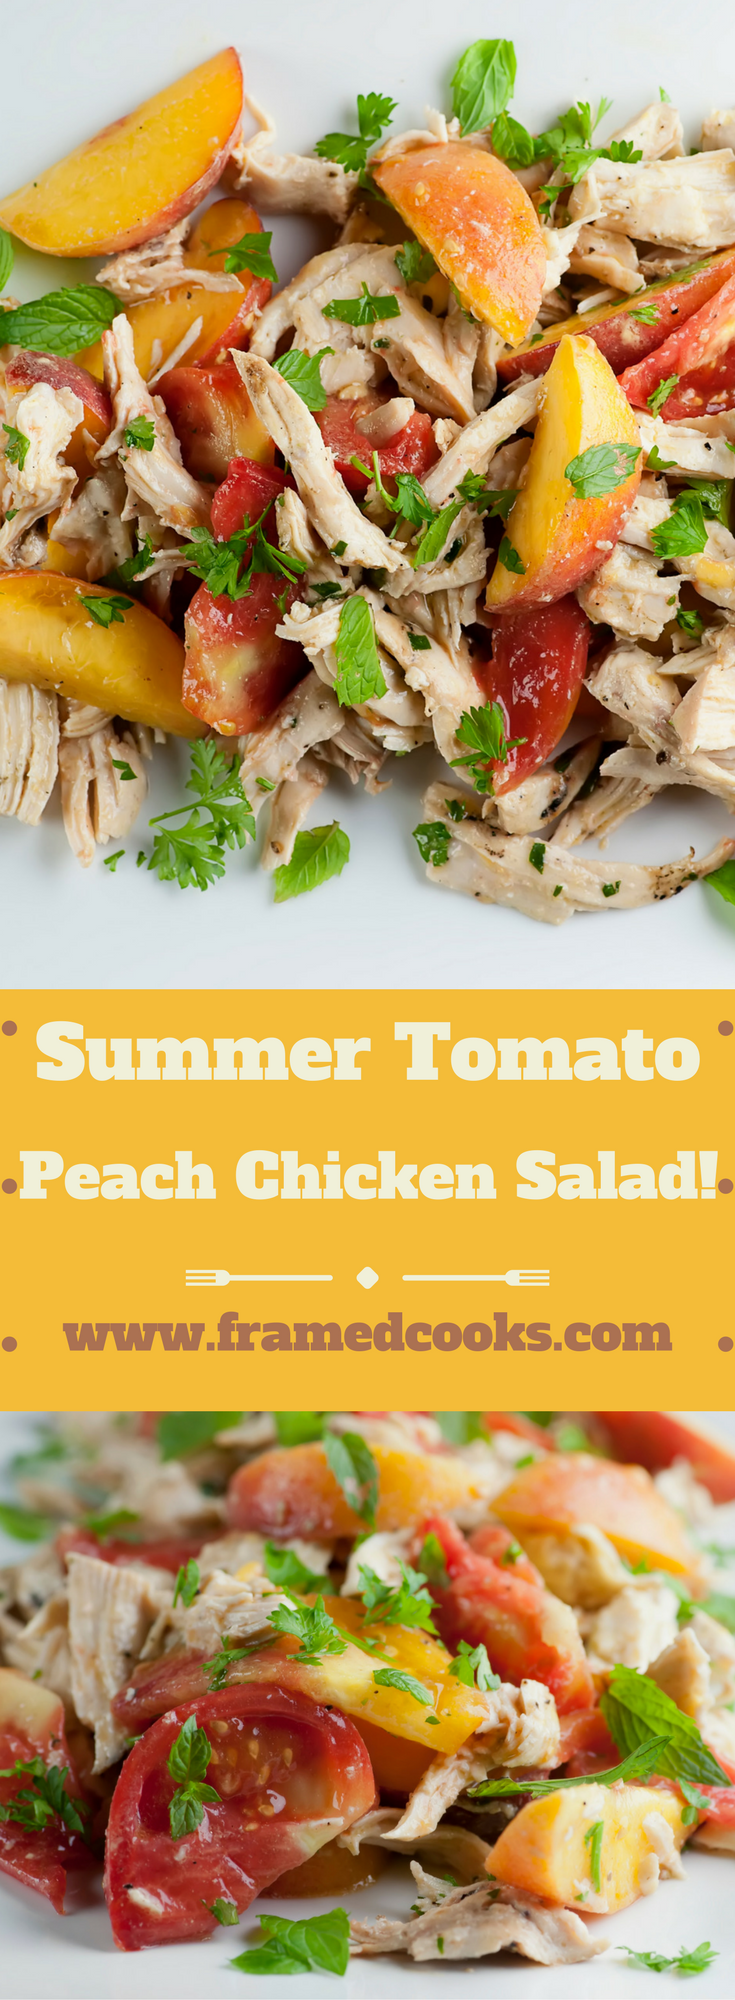 This easy recipe for summer tomato peach chicken salad uses fresh herbs and a light dressing to make this the perfect warm weather meal.